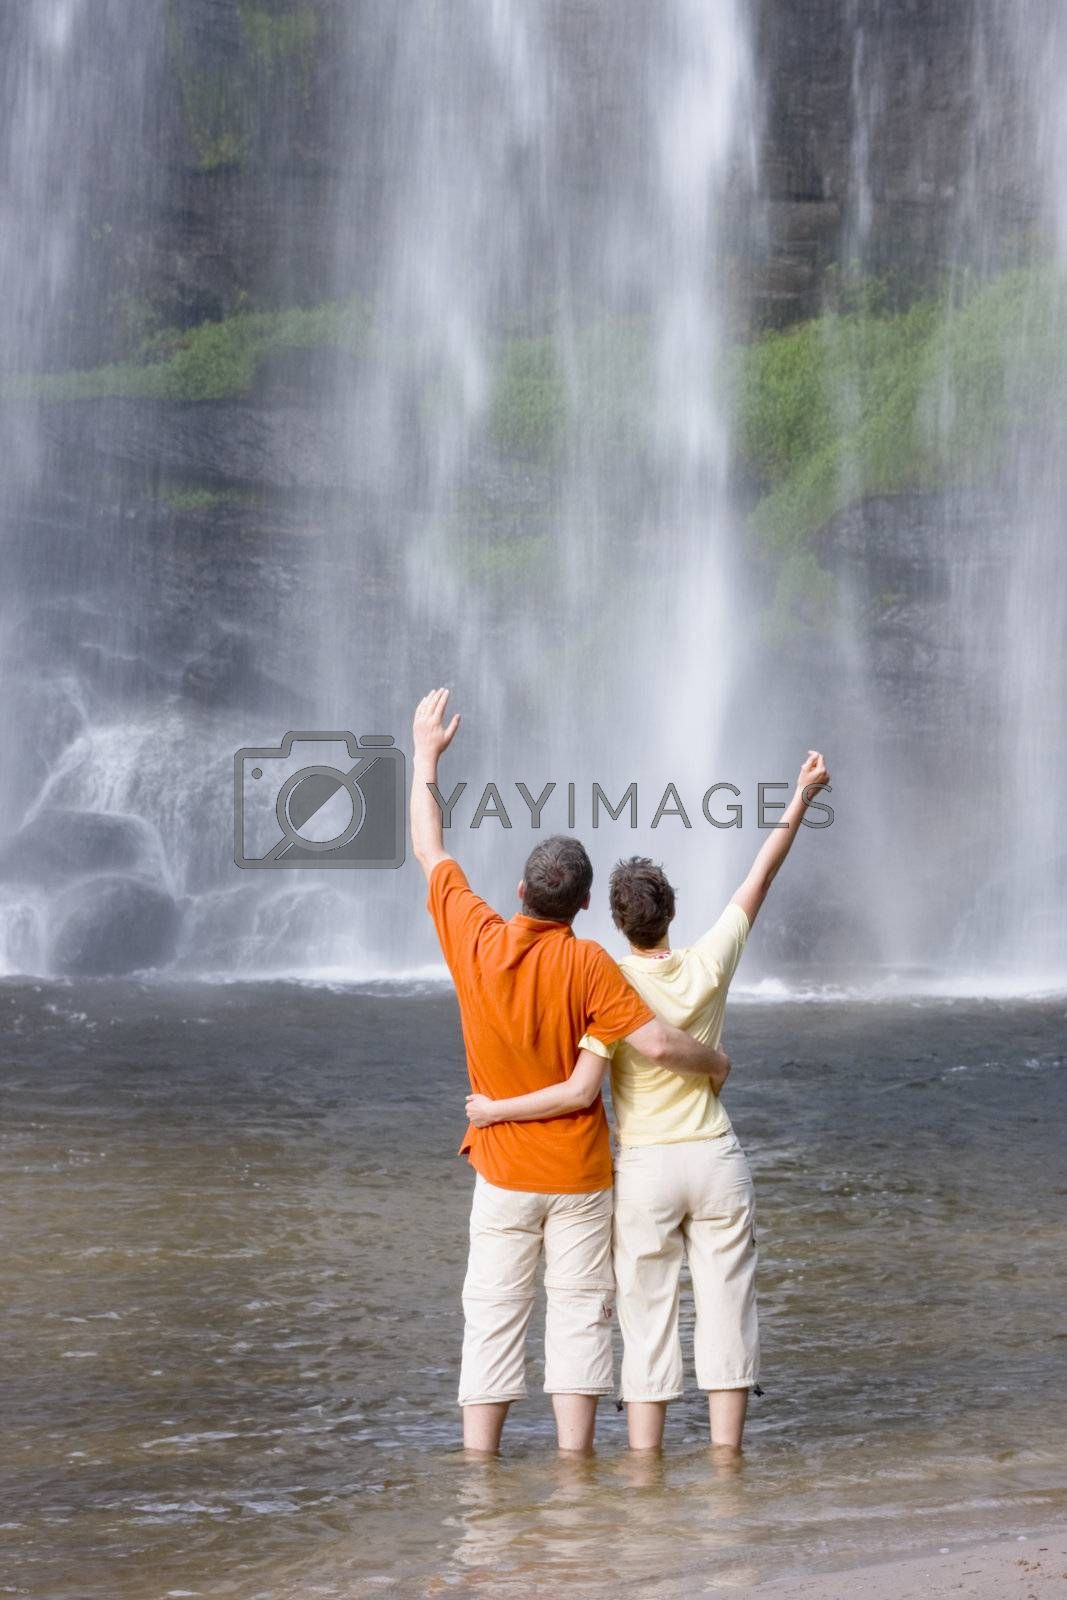 Couple with uplifted arms in front of a tropical waterfall in Brazil